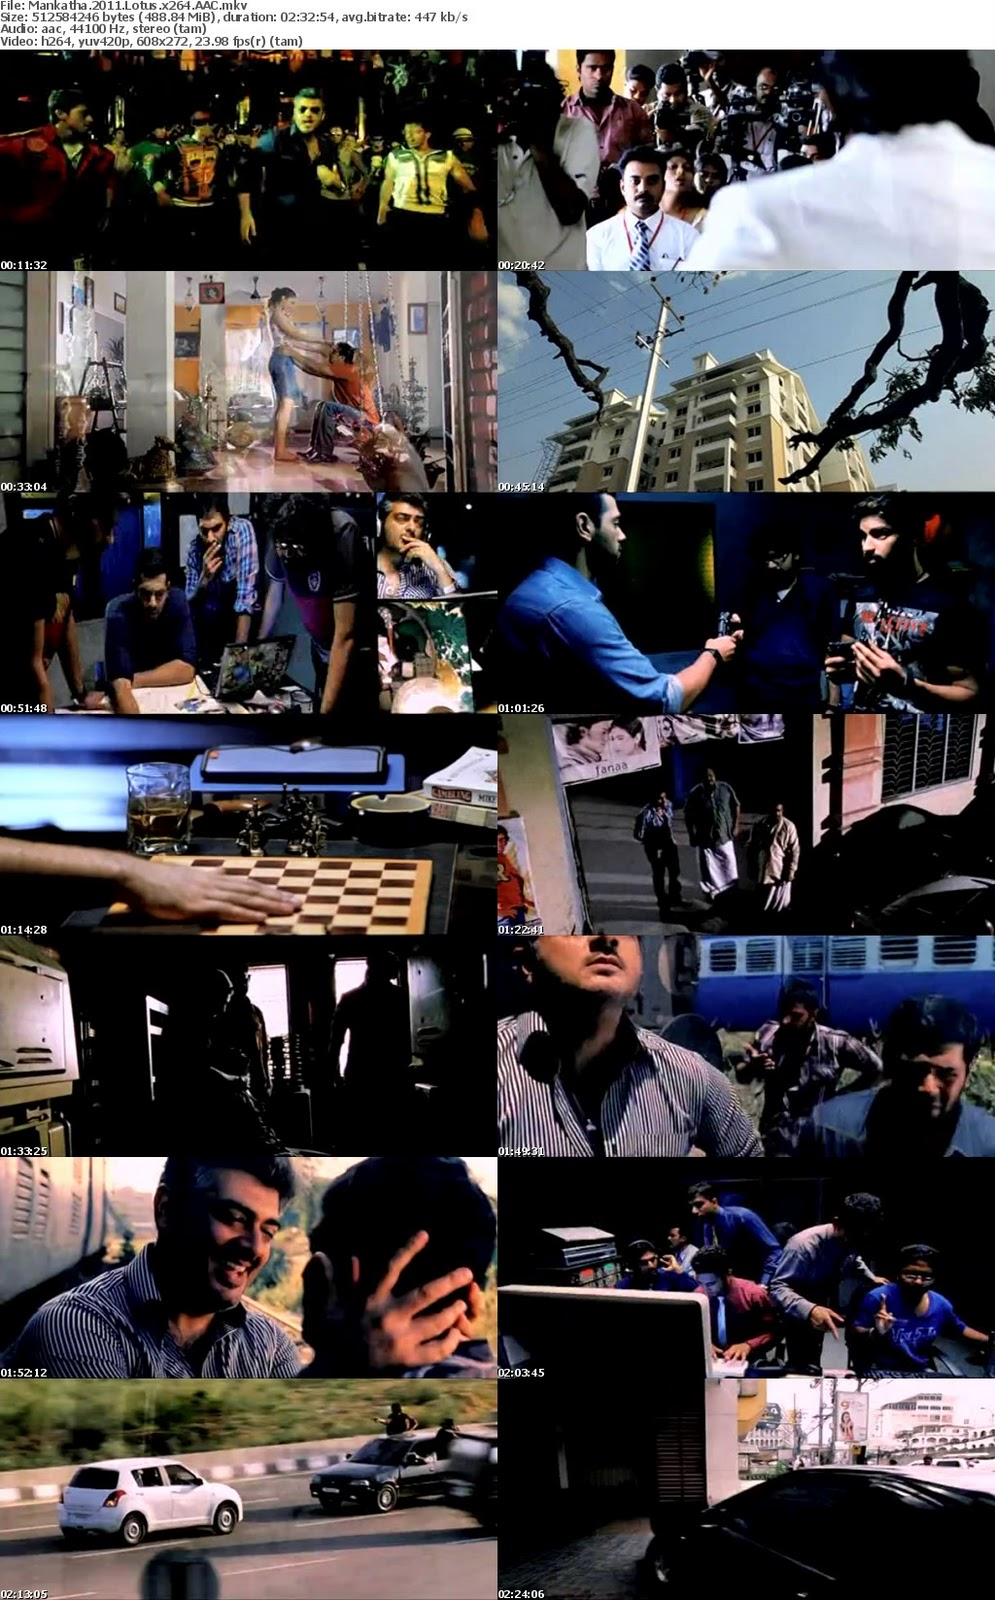 MANKATHA+2011++TAMIL+MOVIE+LOTUS+DVDRIP